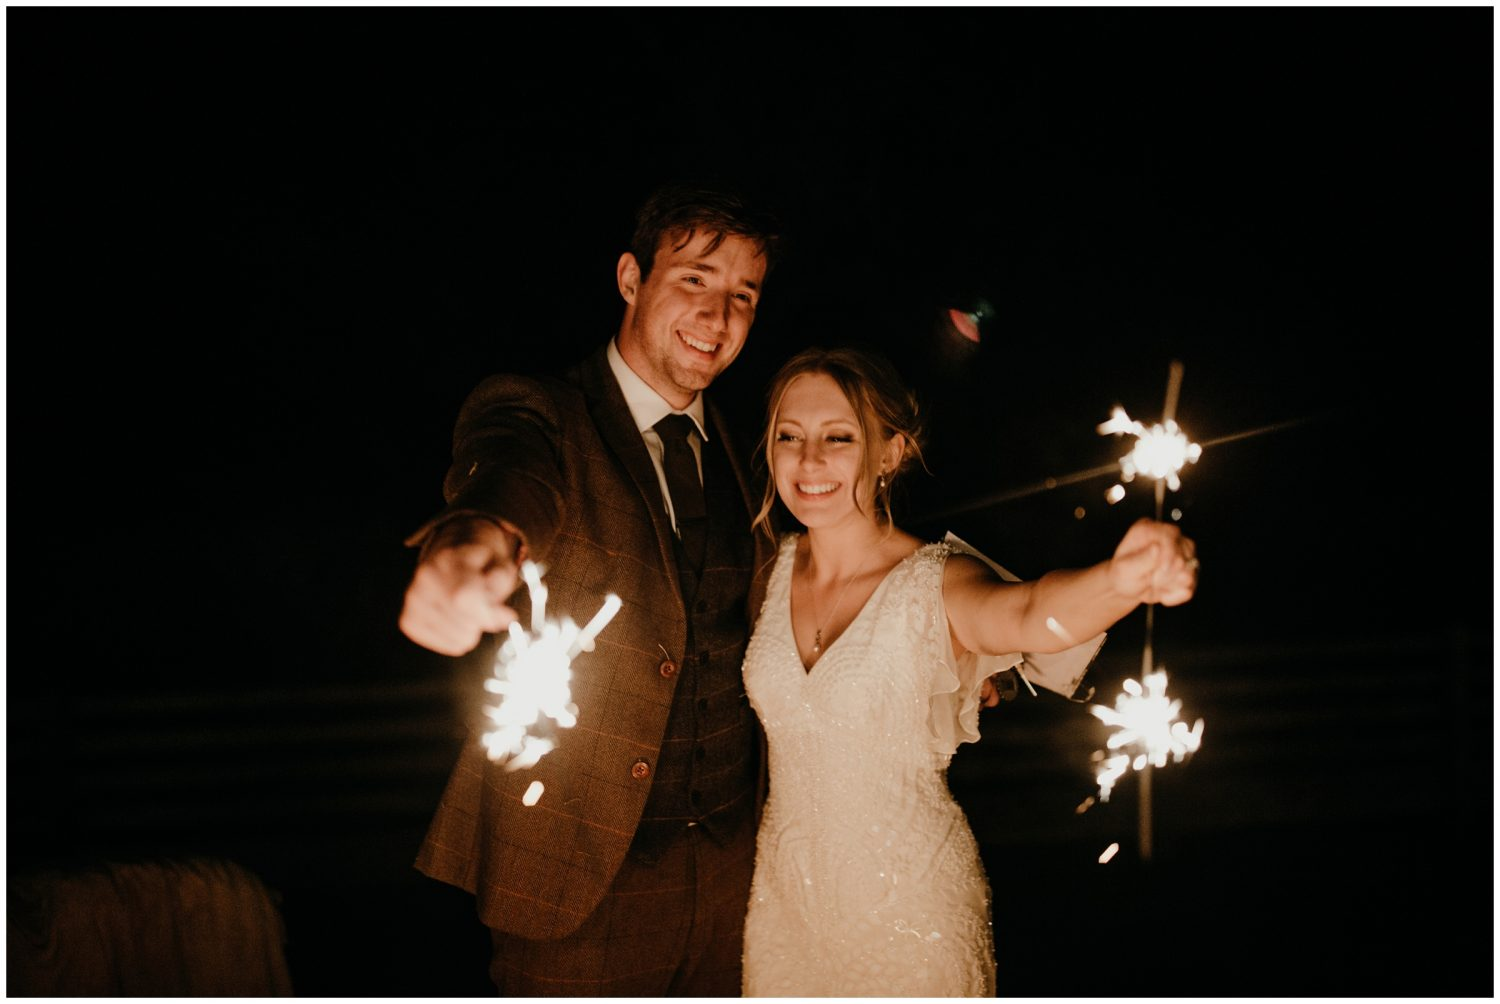 bride and groom with sparklers at wedding